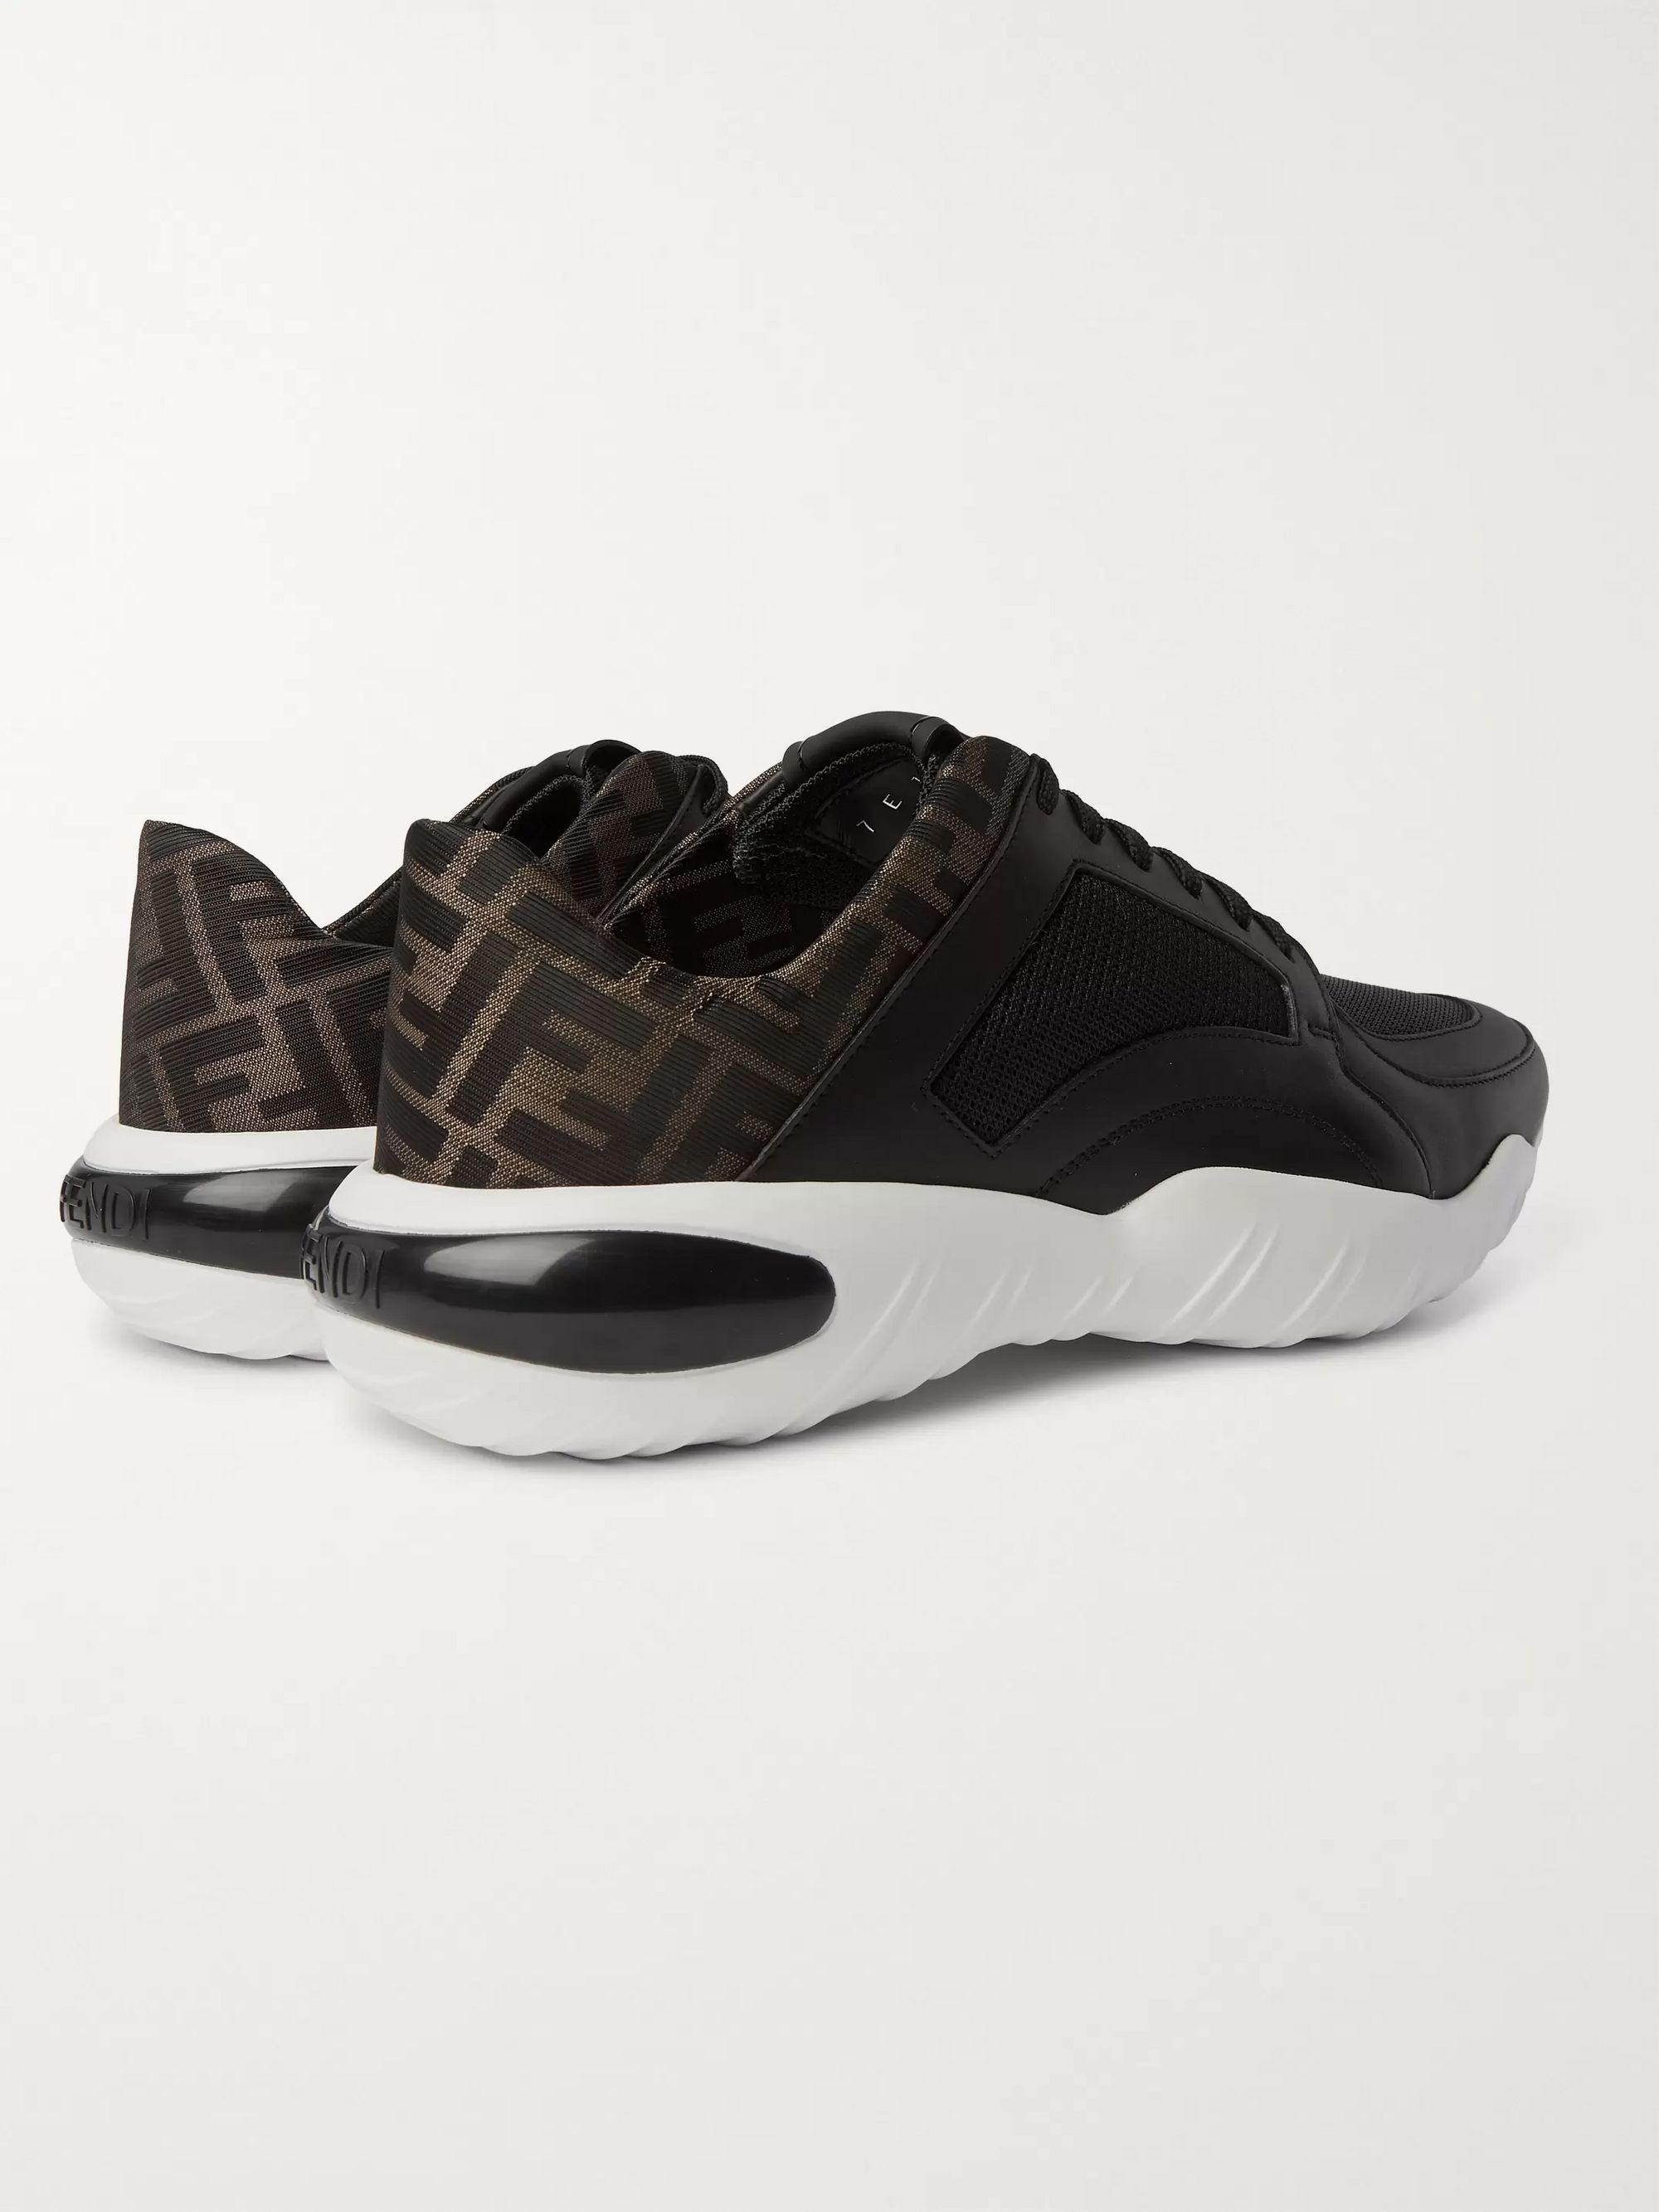 Fendi Logo-Jacquard Leather and Mesh Sneakers